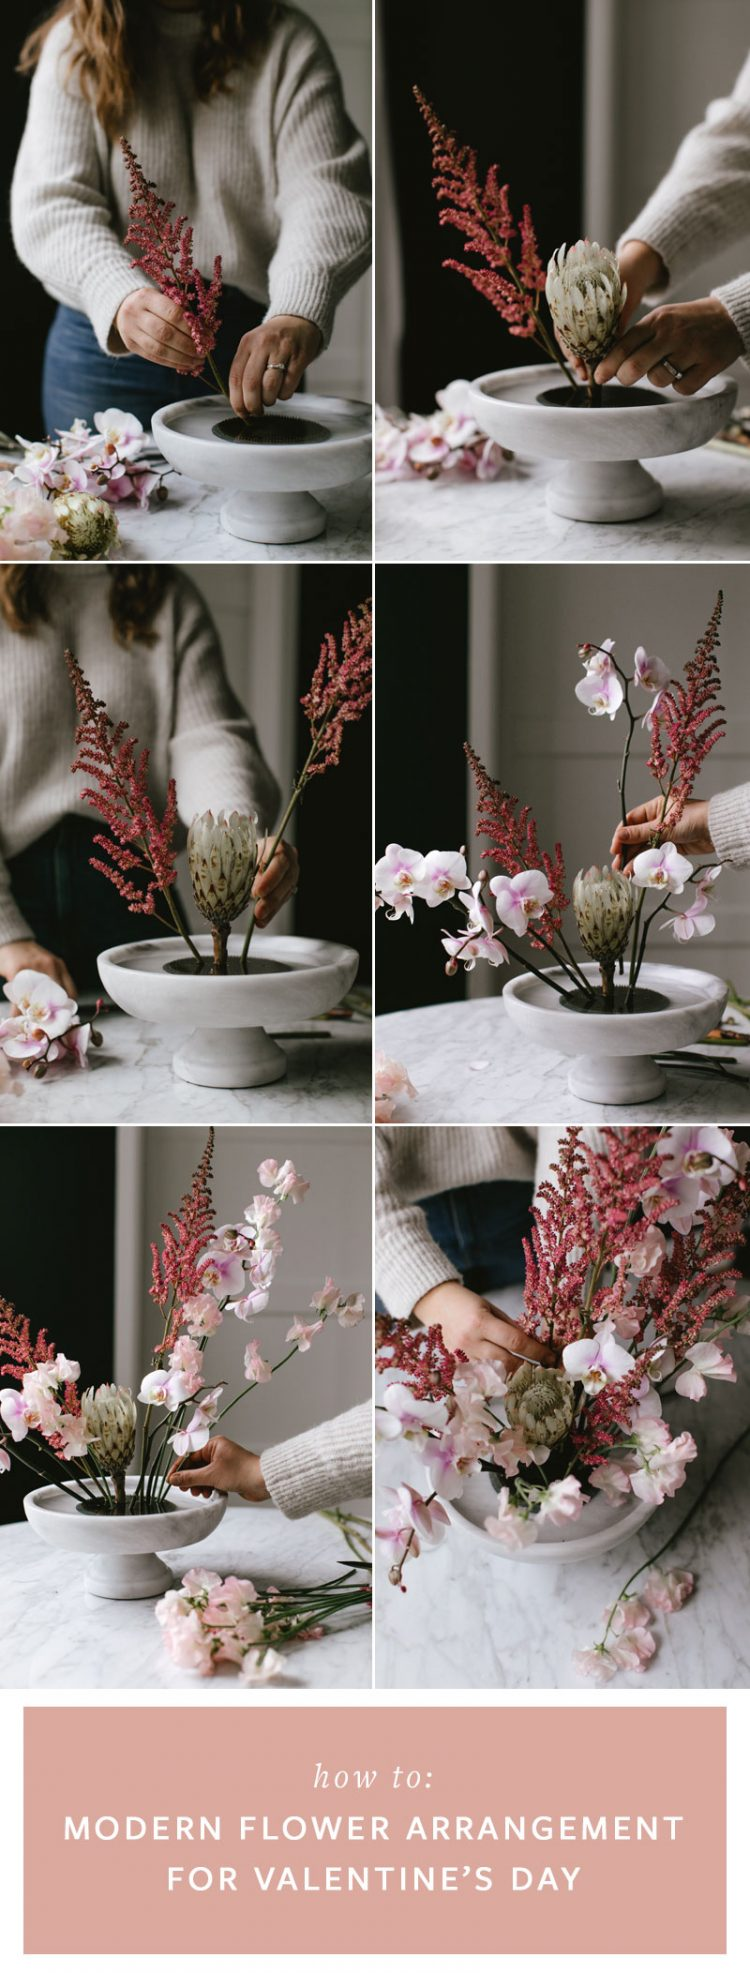 How to Make A Pastel Hued Modern Flower Arrangement for Valentine's Day! Create an ikebana inspired centerpiece with orchids, white protea, and sweet peas for a dramatic blush, pale pink, and lavender flower installation wrapped in ivory tulle. Step-by-step DIY tutorial on jojotastic.com #valentinesday #centerpiece #pinkflowers #modernflowerarrangement #modernflowers #diy